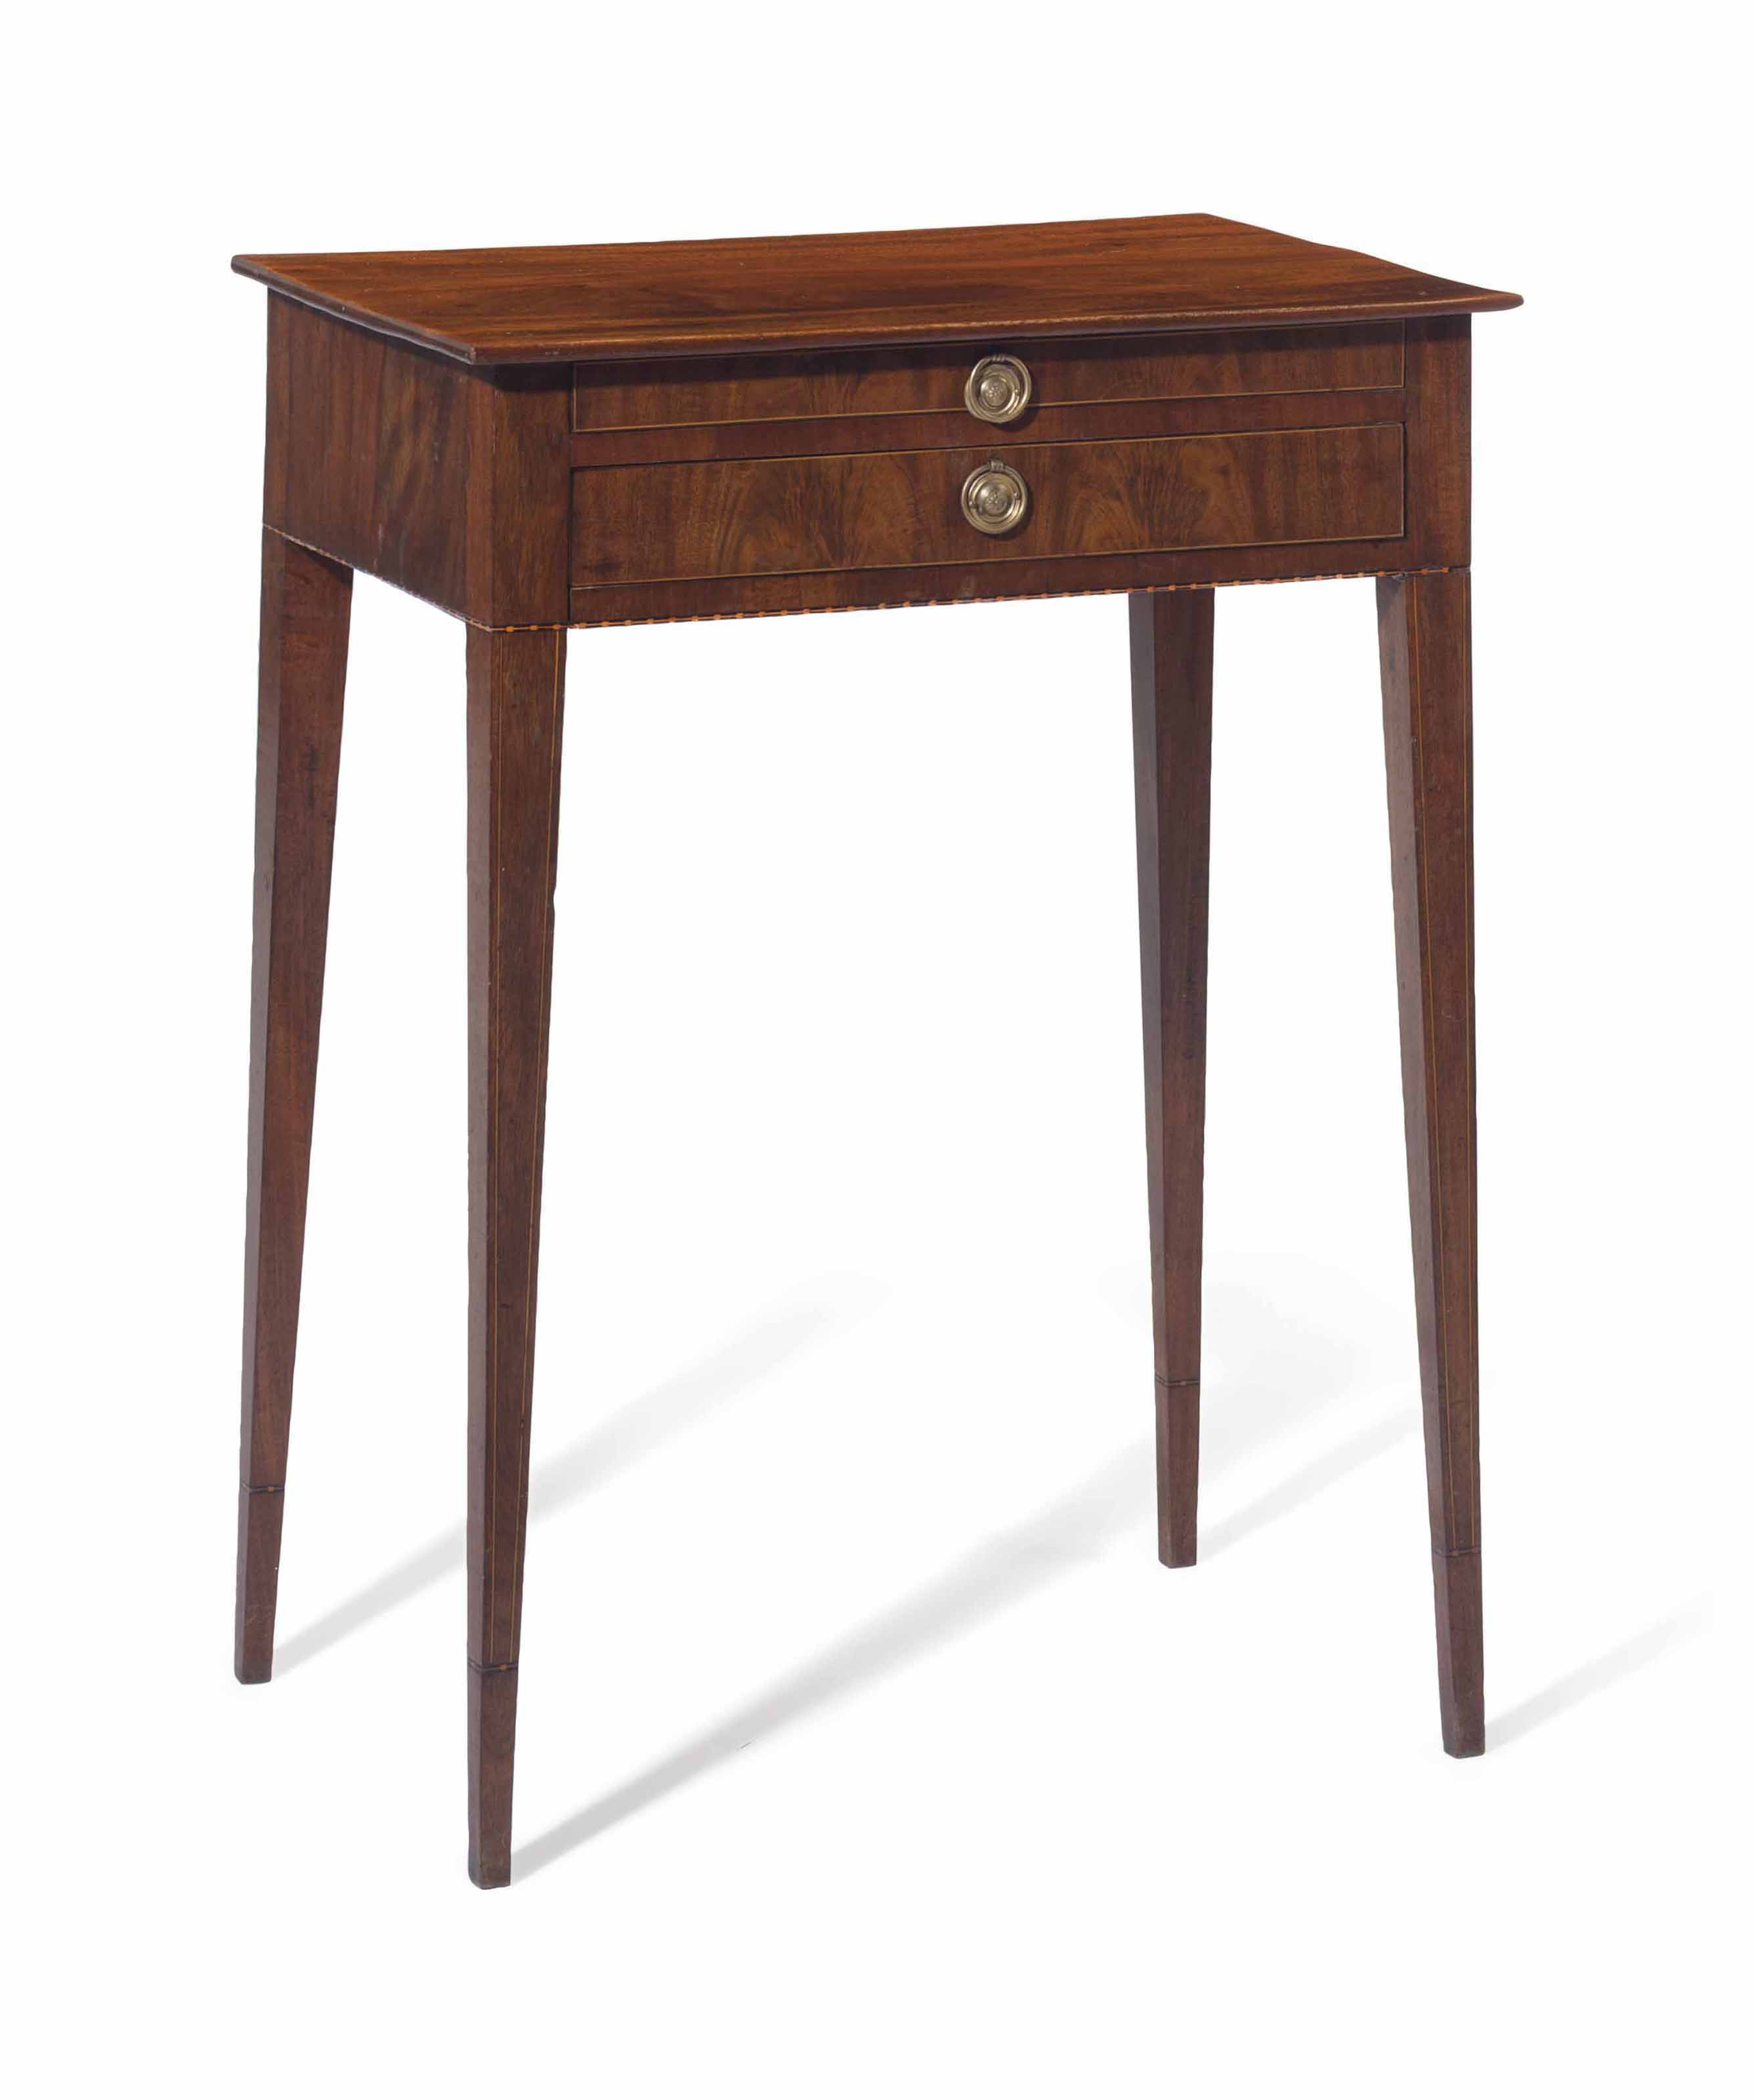 A FEDERAL INLAID MAHOGANY SIDE TABLE